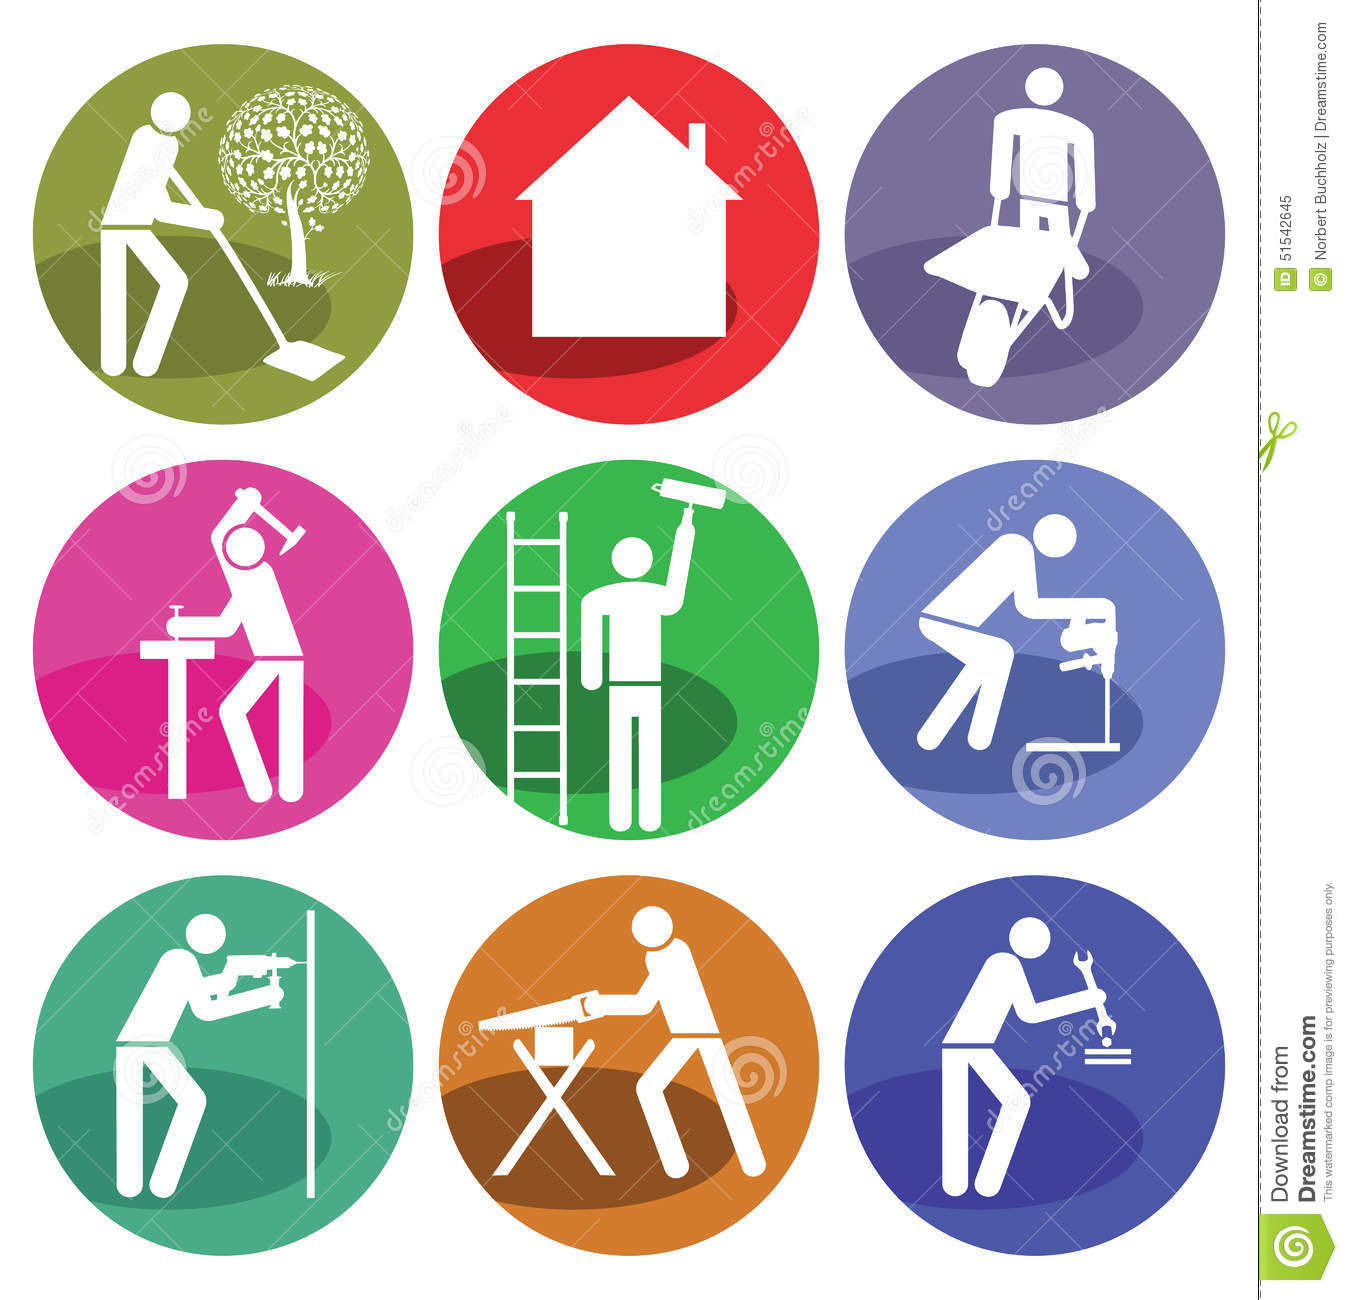 Home Improvement Icons Stock Photo - Image: 51542645